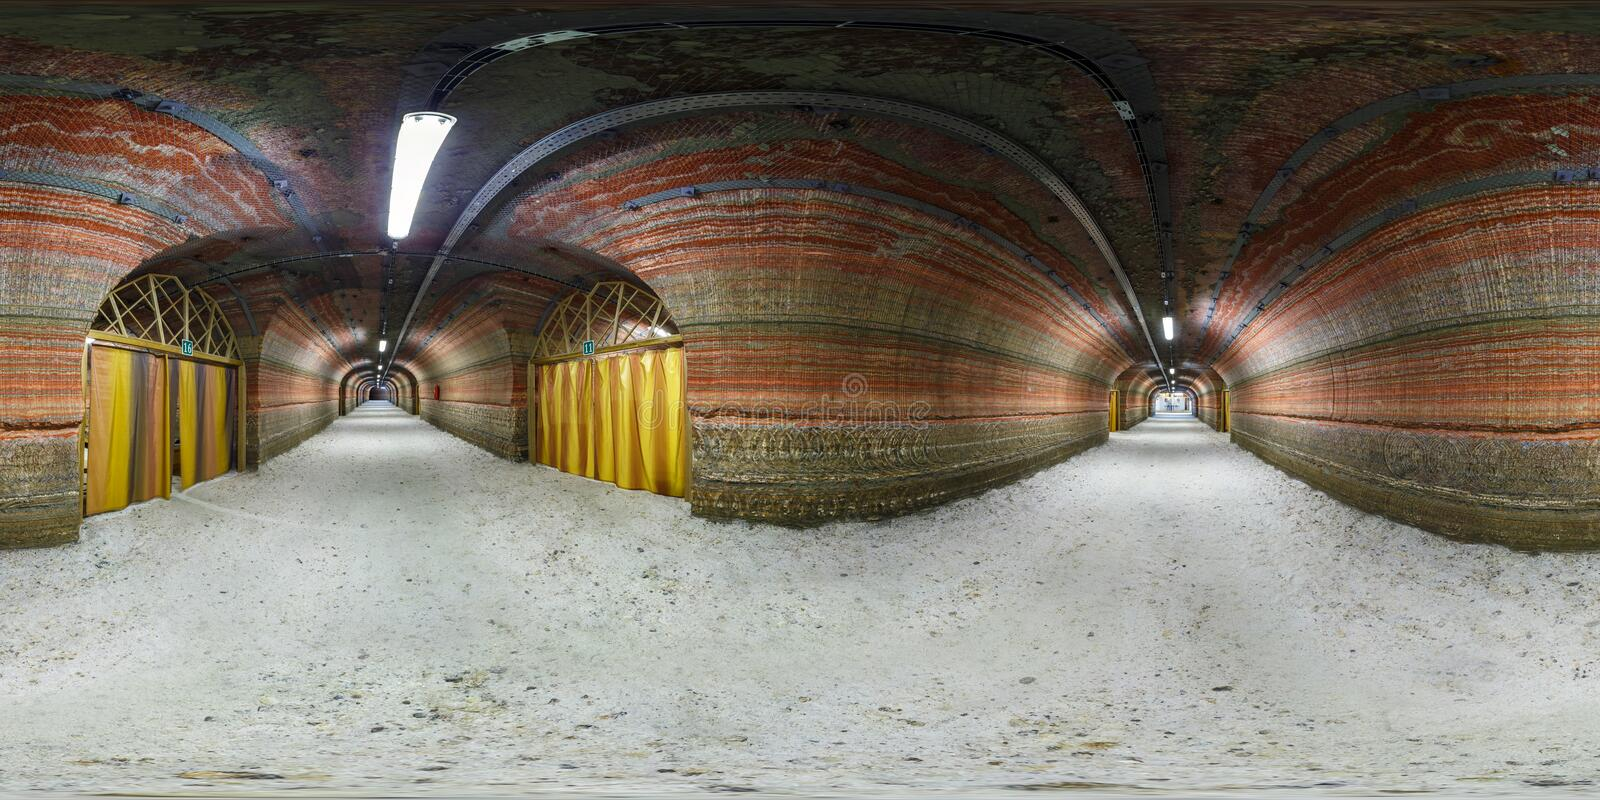 SOLIGORSK, BELARUS - MARCH 7, 2014: Full spherical 360 by 180 degrees seamless panorama in equirectangular equidistant projection. Panorama in interior modern royalty free stock photos